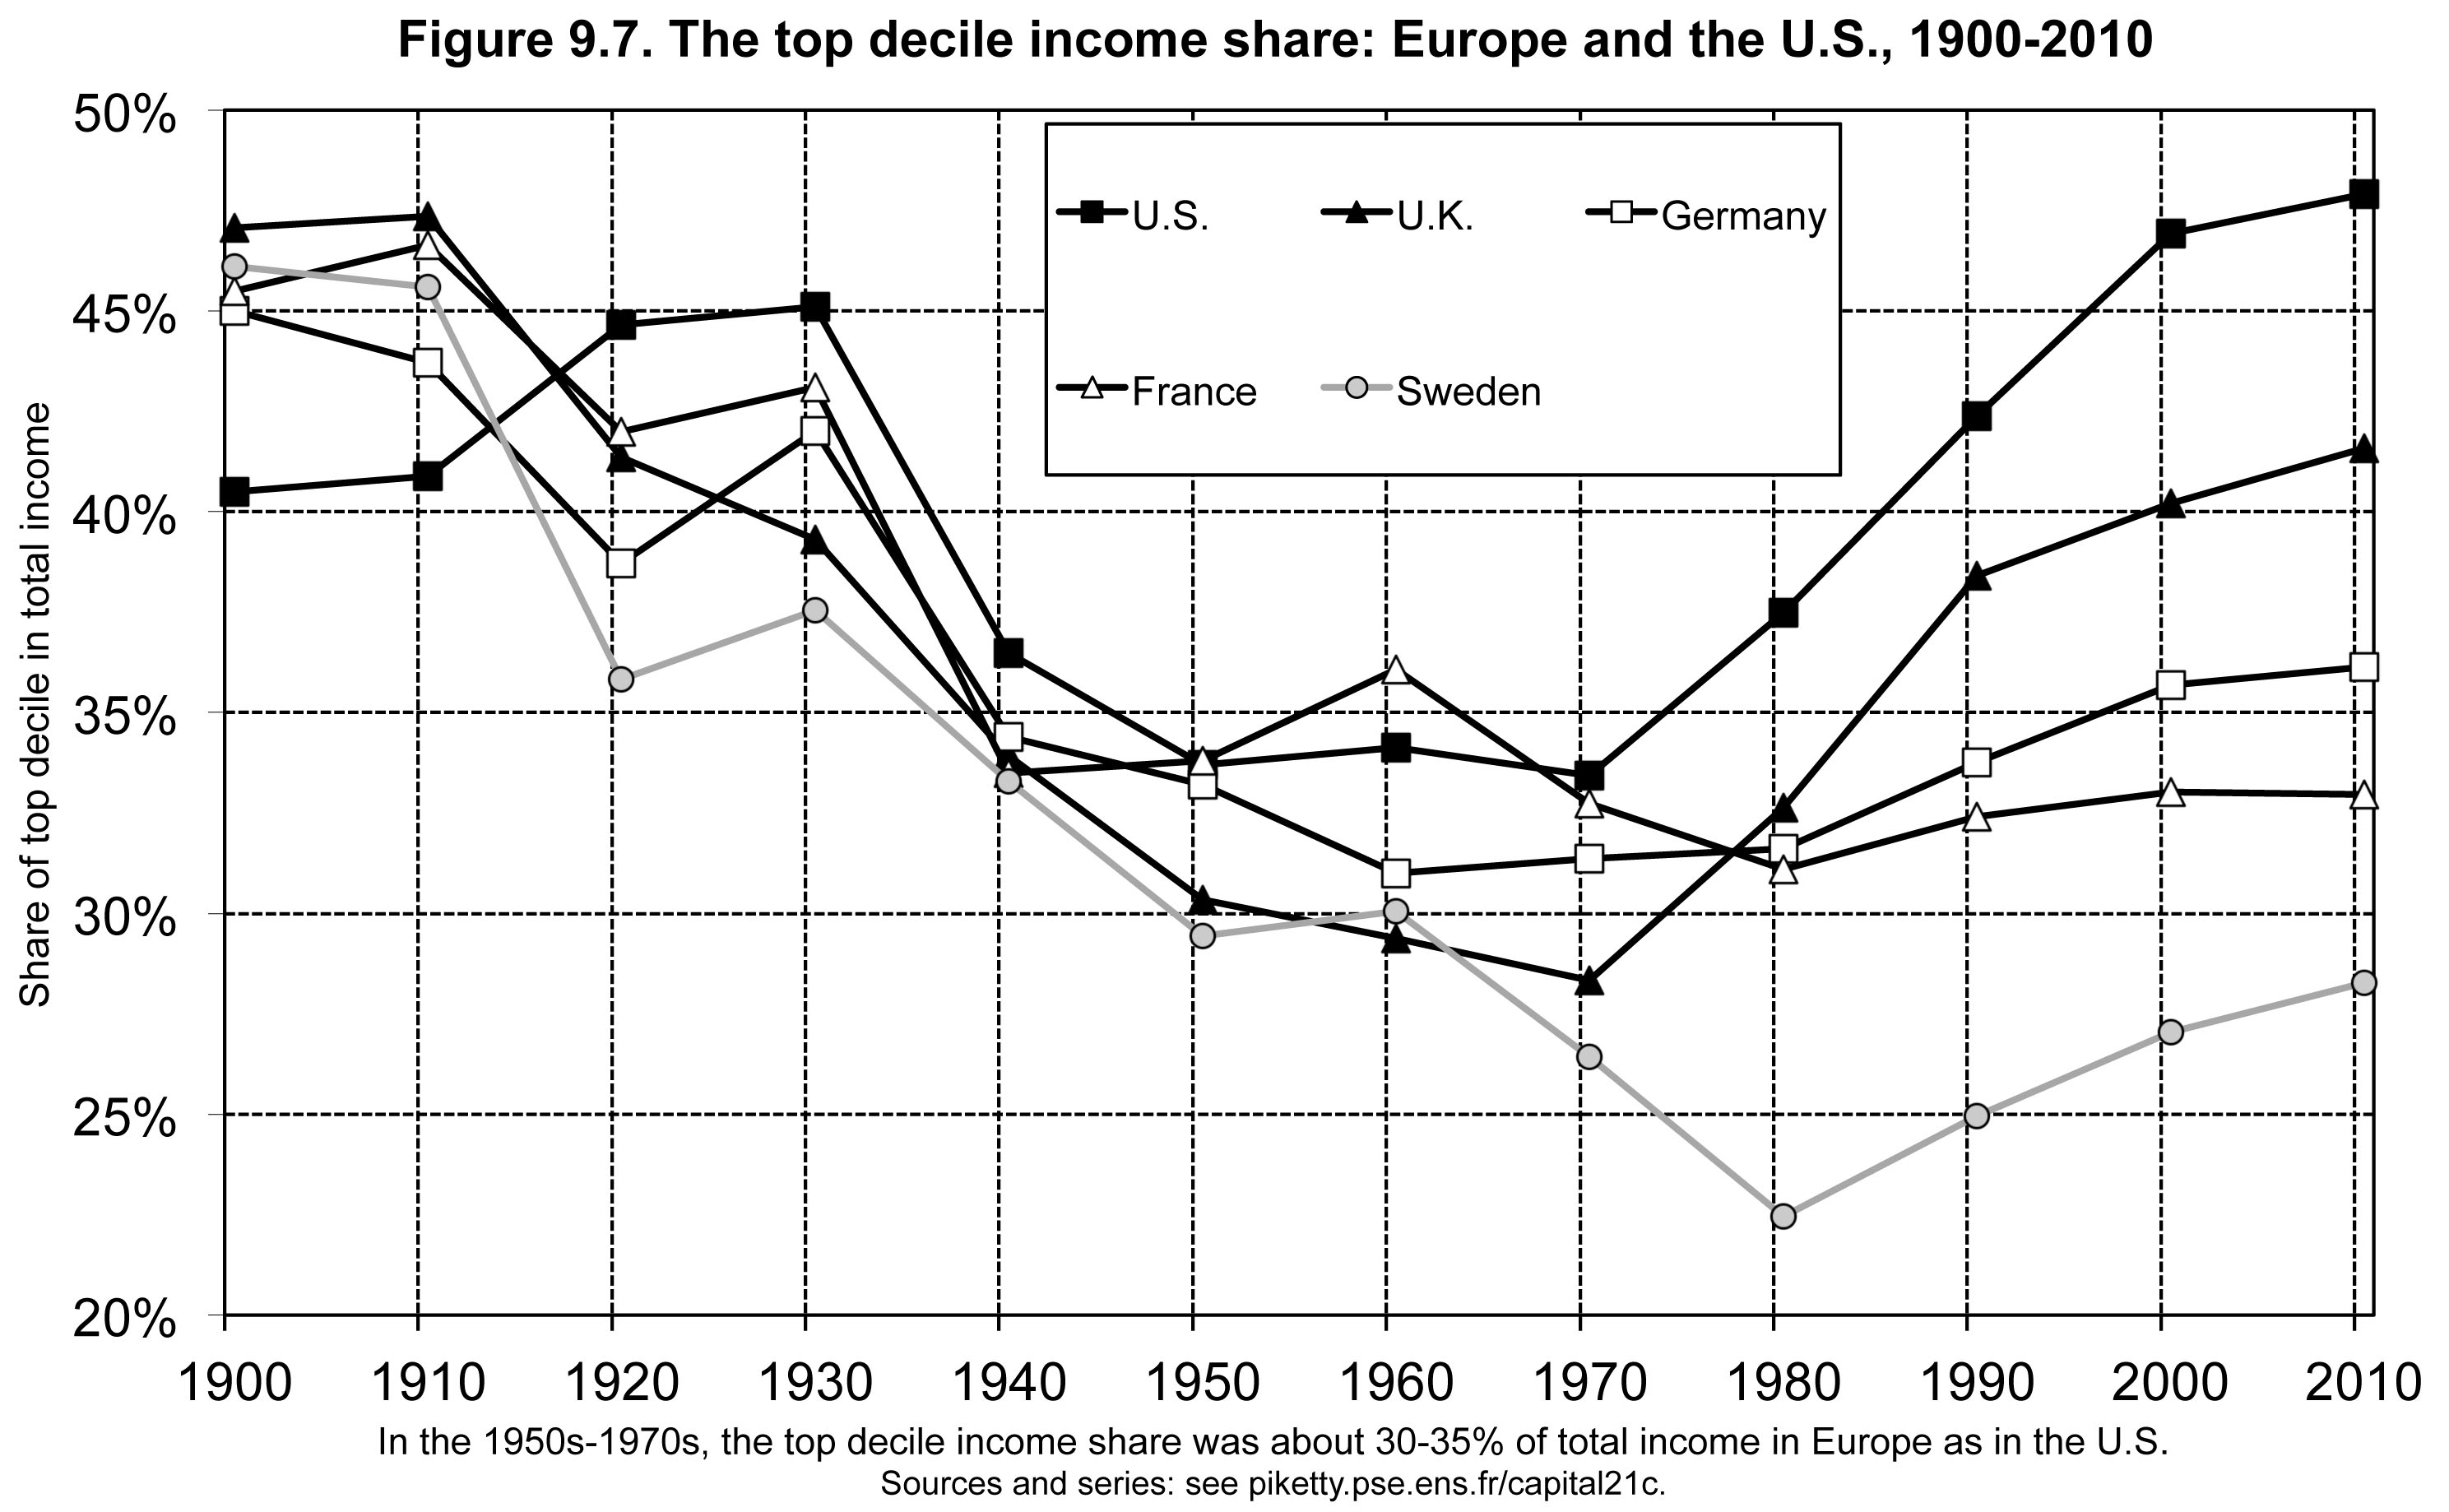 The Top Decile Income Share, Europ and the US, 1900 - 2010